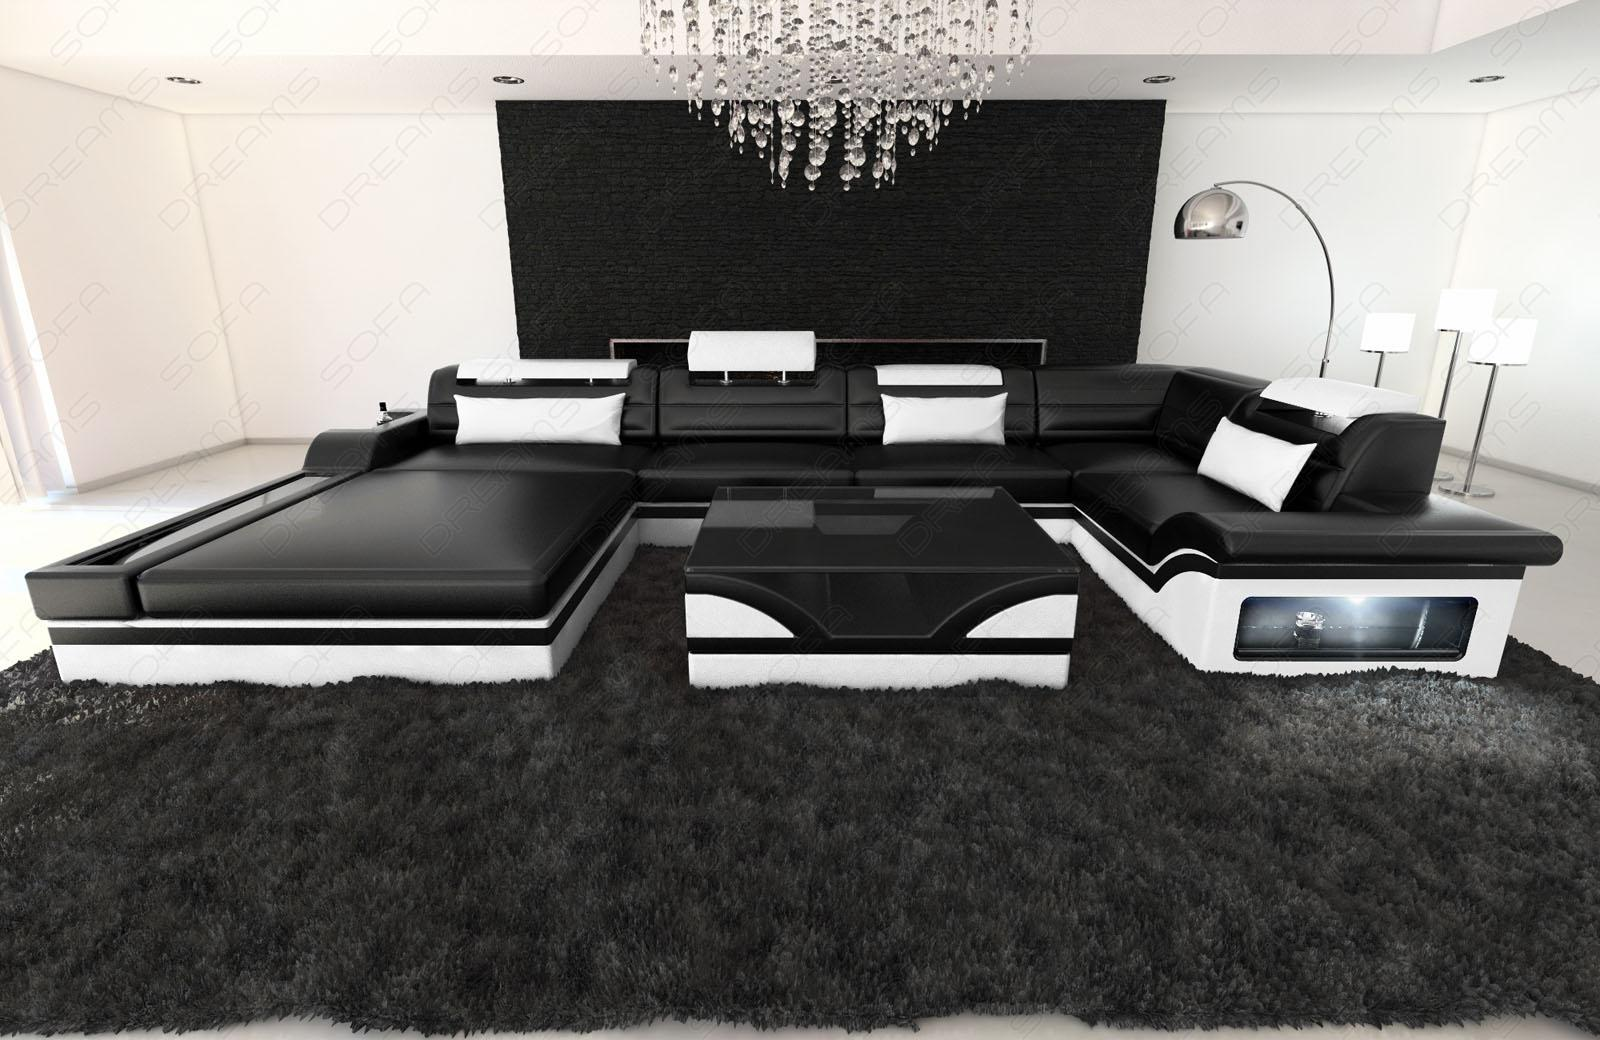 luxus wohnlandschaft mezzo mit led kaufen bei pmr handelsgesellschaft mbh. Black Bedroom Furniture Sets. Home Design Ideas